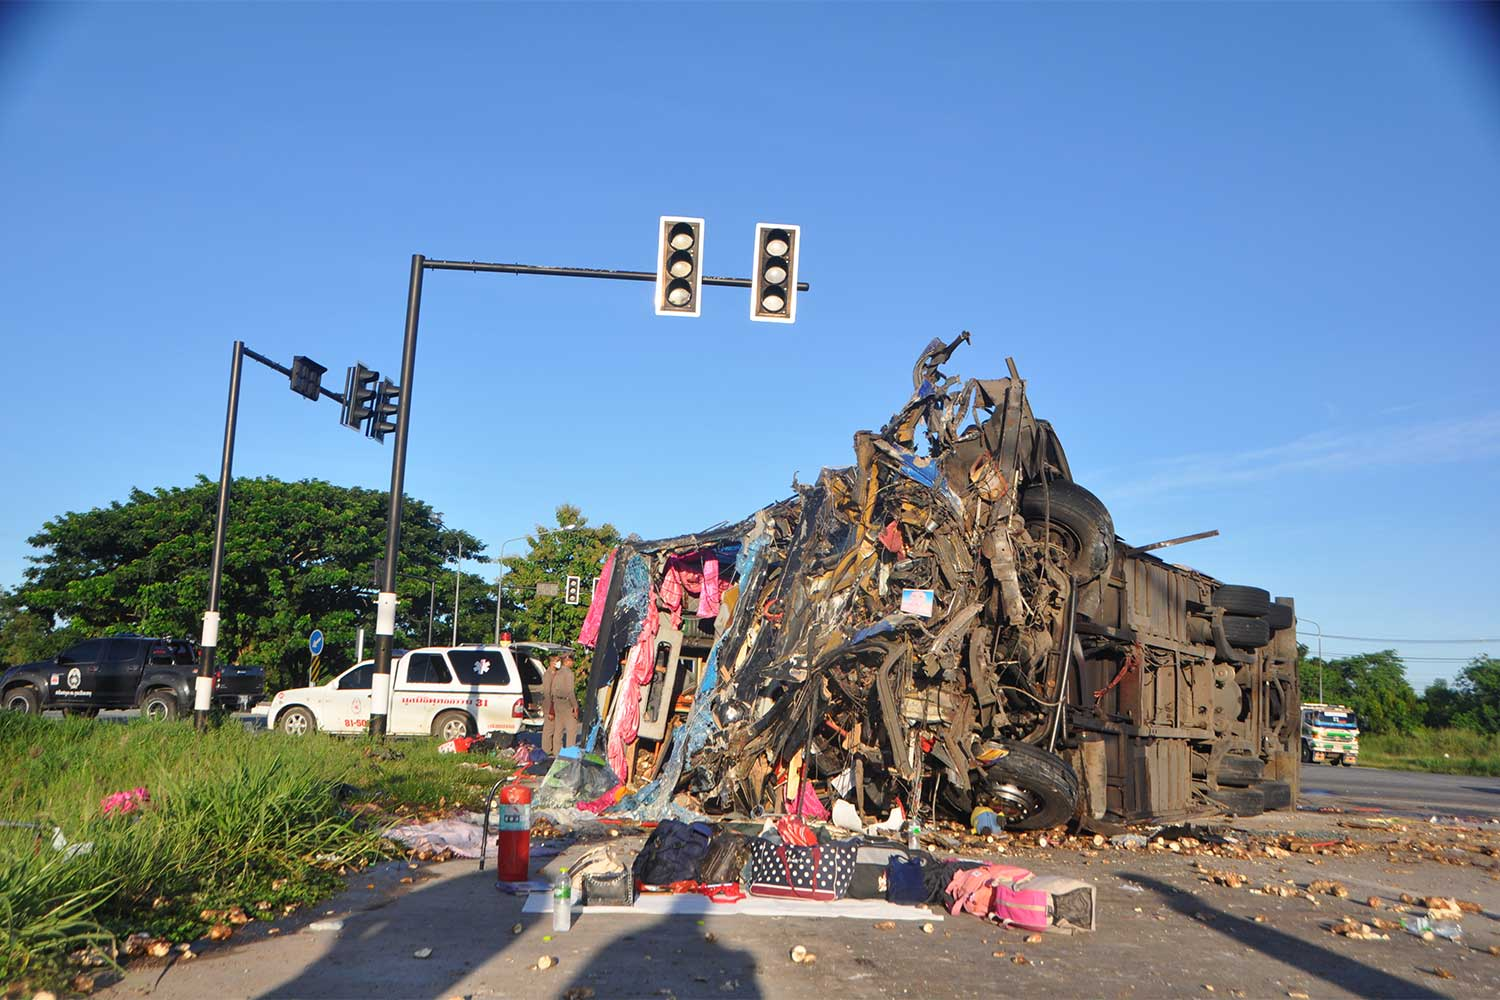 Rescue workers try to retrieve injured and dead victims from a double-decker tour bus that overturned after ramming into a trailer truck in Muang district of Nakhon Ratchasima early Saturday. (Photo: Prasit Tangprasert)